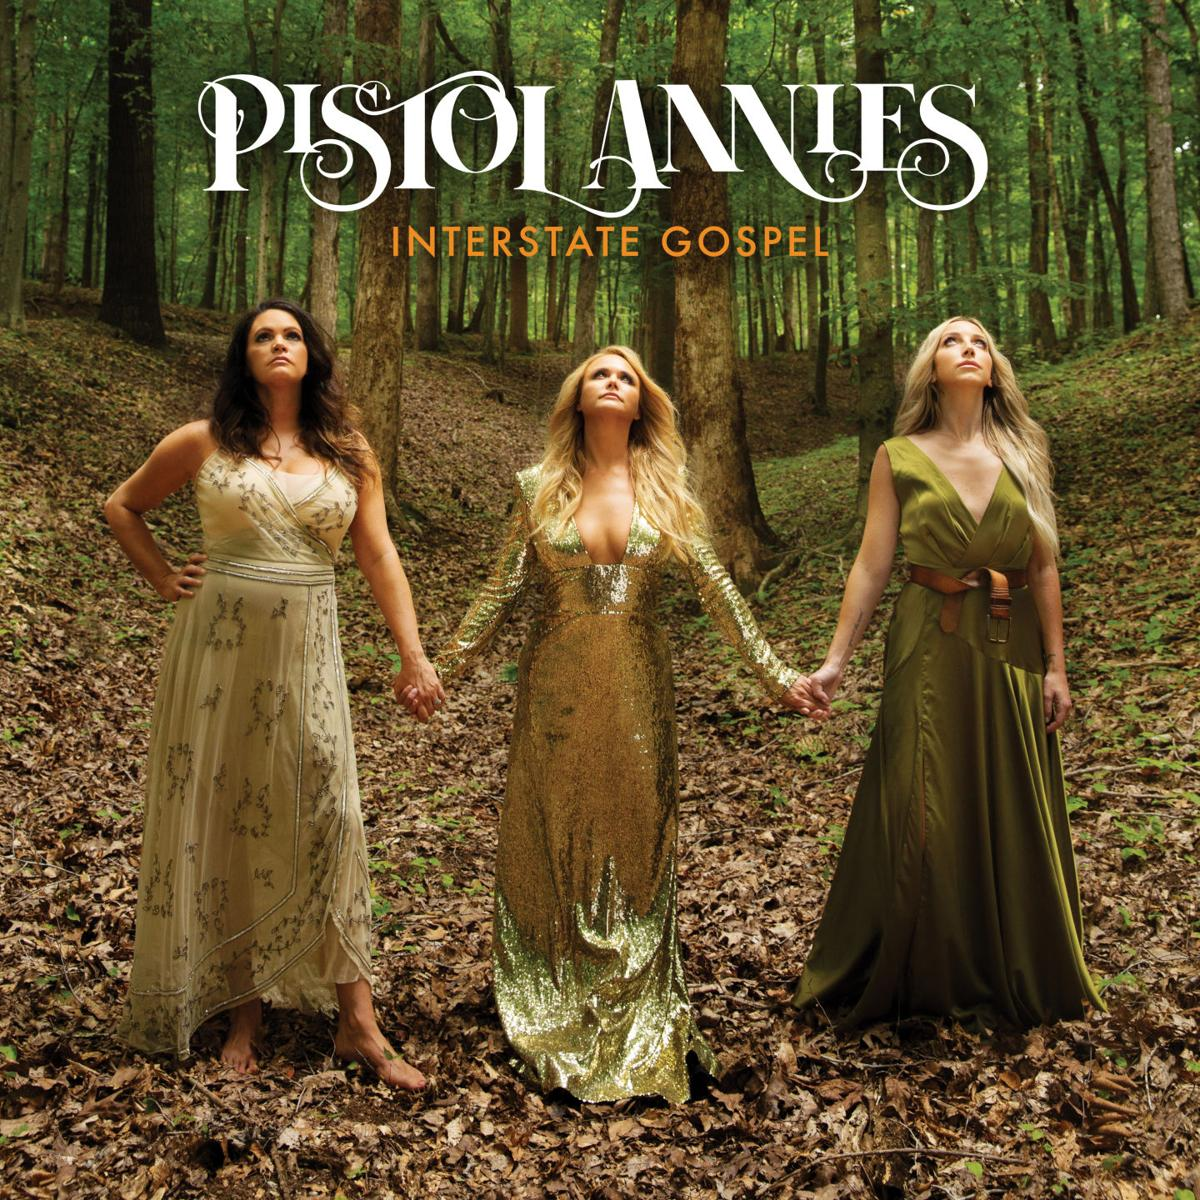 MUSIC-PISTOLANNIES